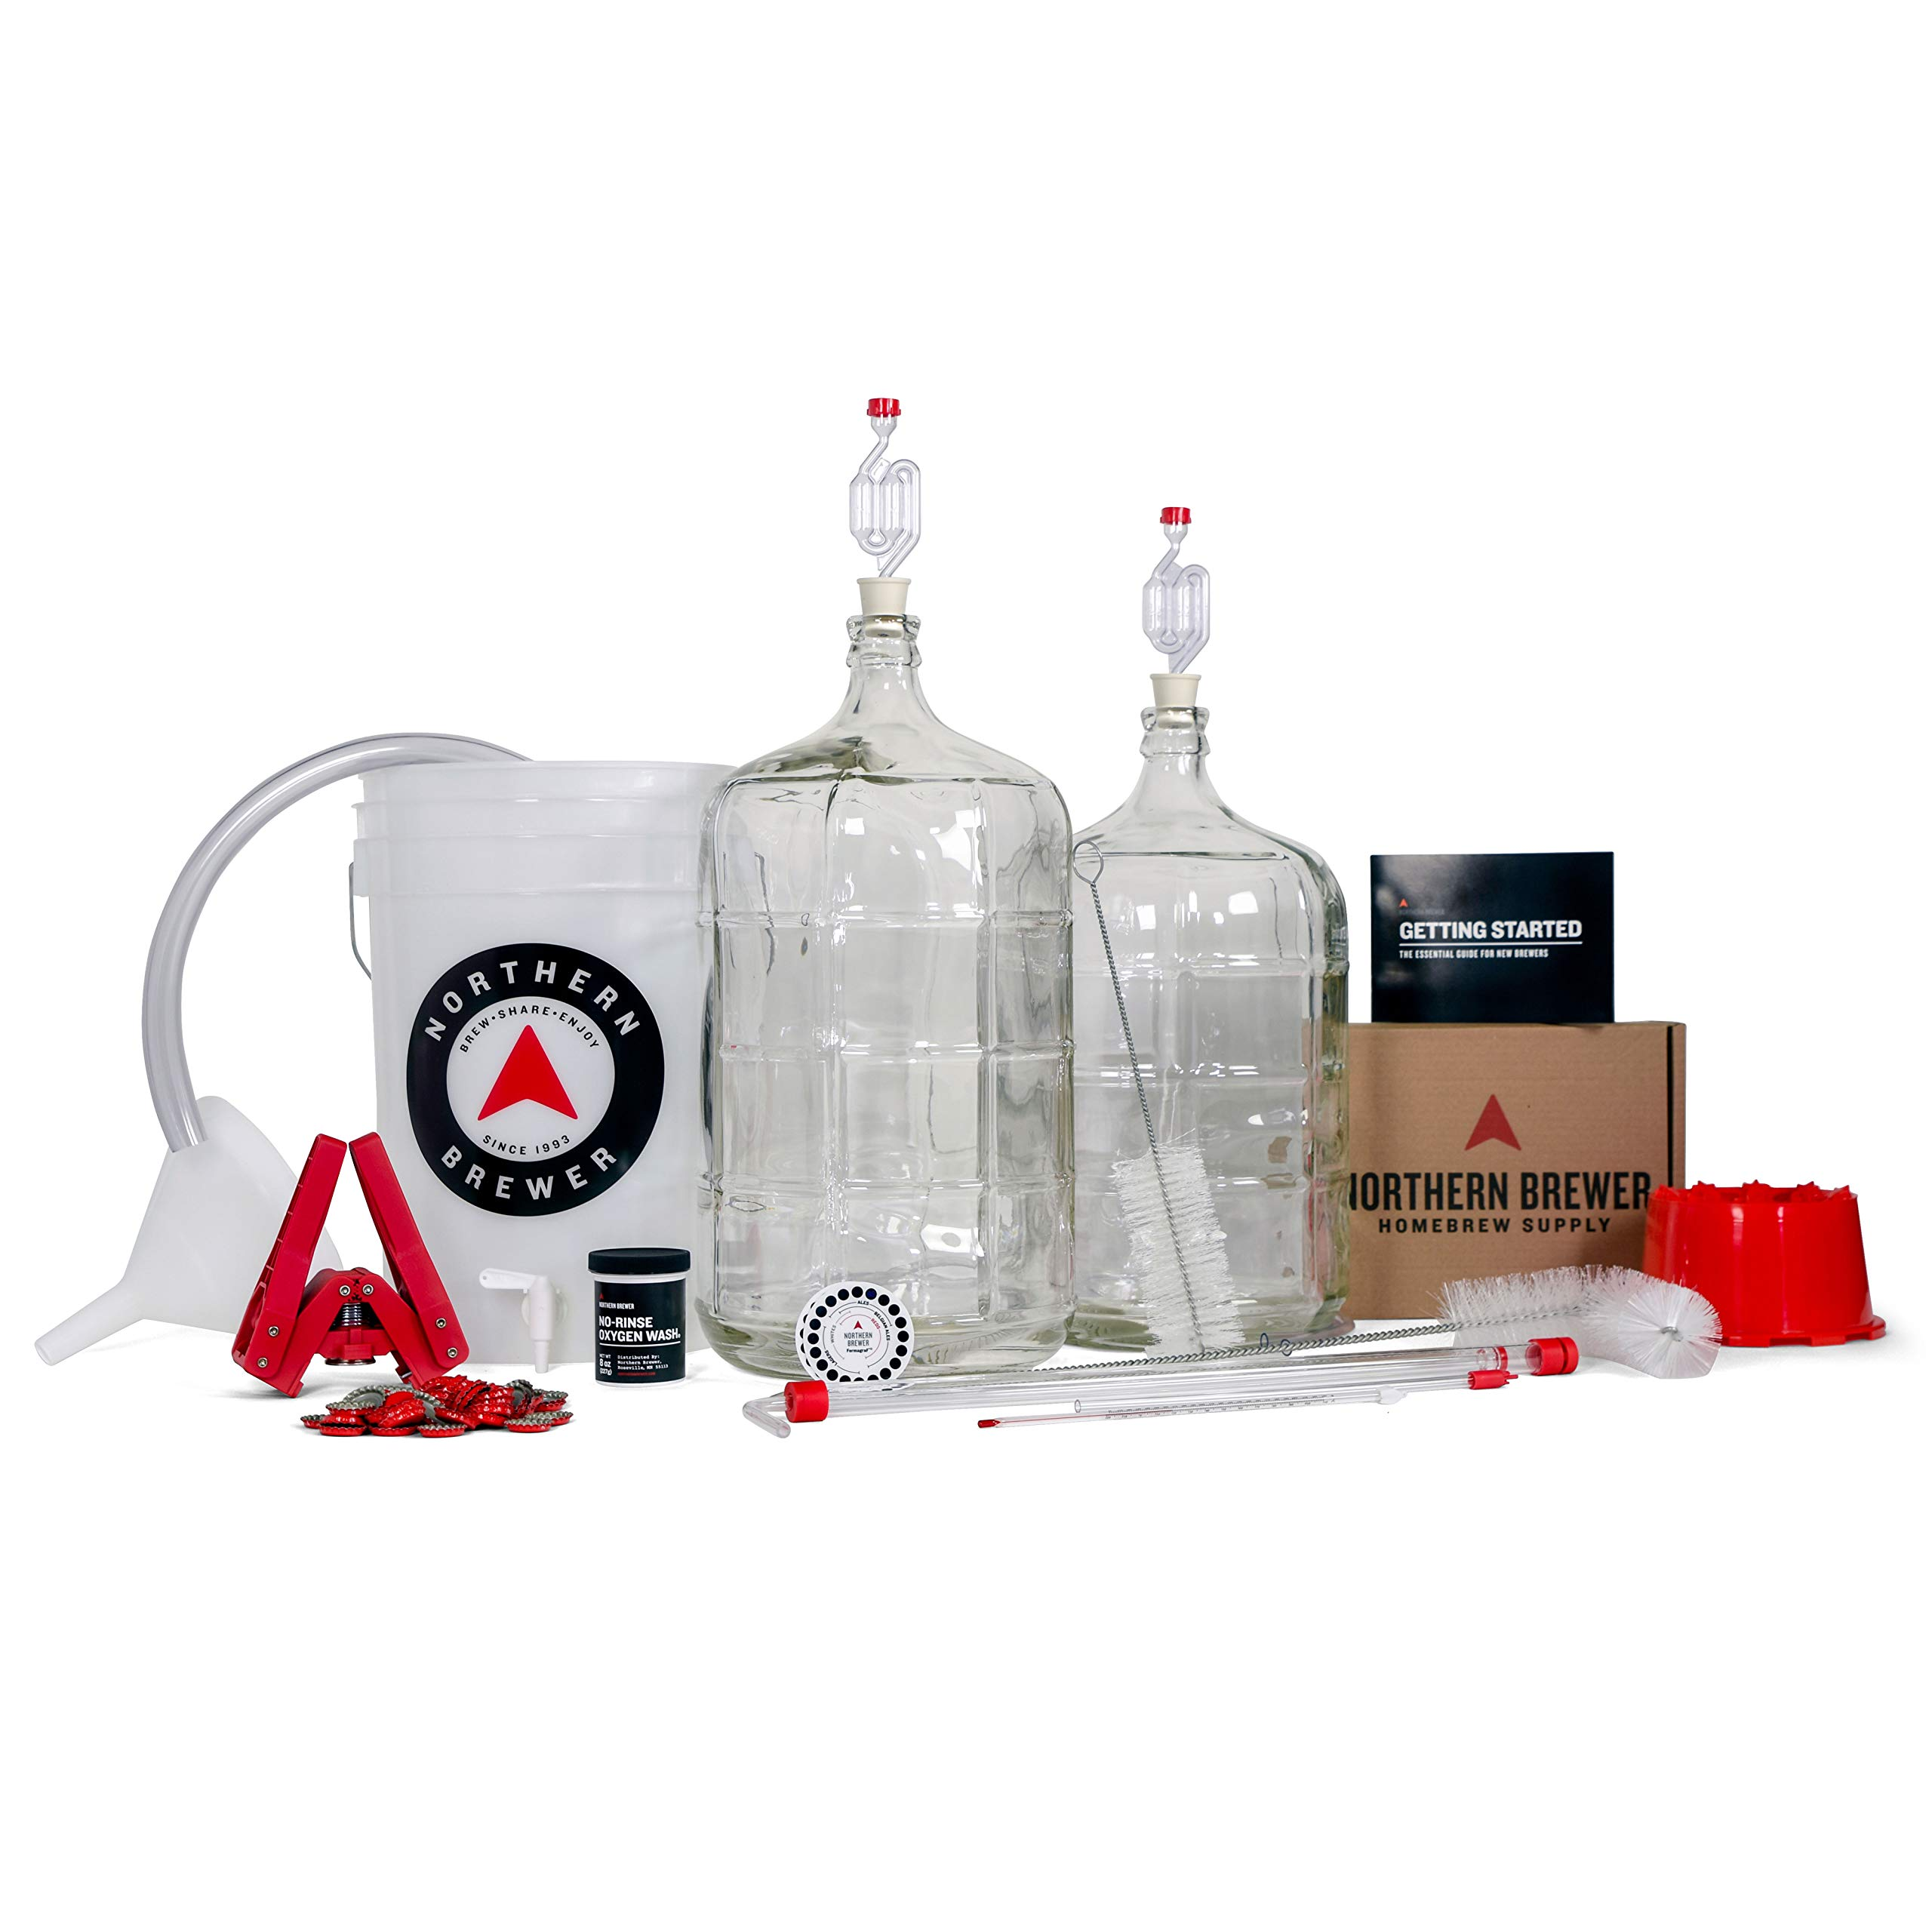 Northern Brewer Deluxe Homebrew Starter Kit & Beer Brewing Recipe Kit - Glass Carboys Fermenter With Equipment For Making 5 Gallons Of Homemade Beer (Bavarian Hefeweizen) by Northern Brewer (Image #1)